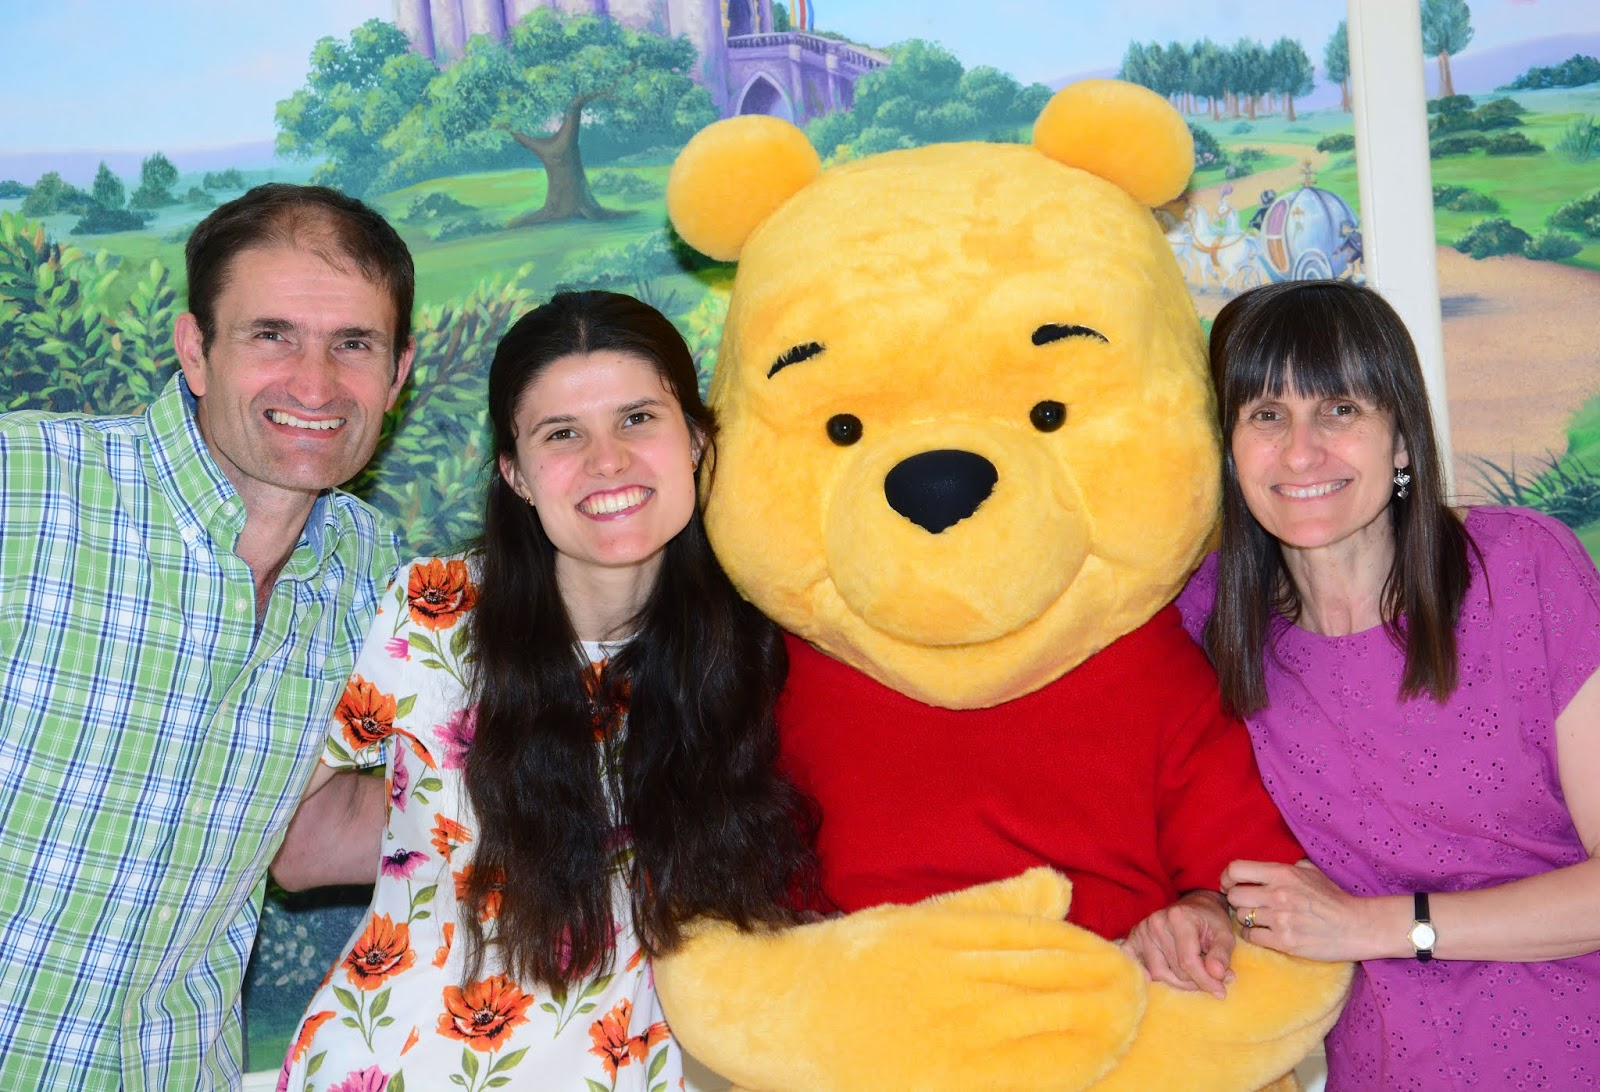 Meeting Winnie the Pooh at Walt Disney World in Florida